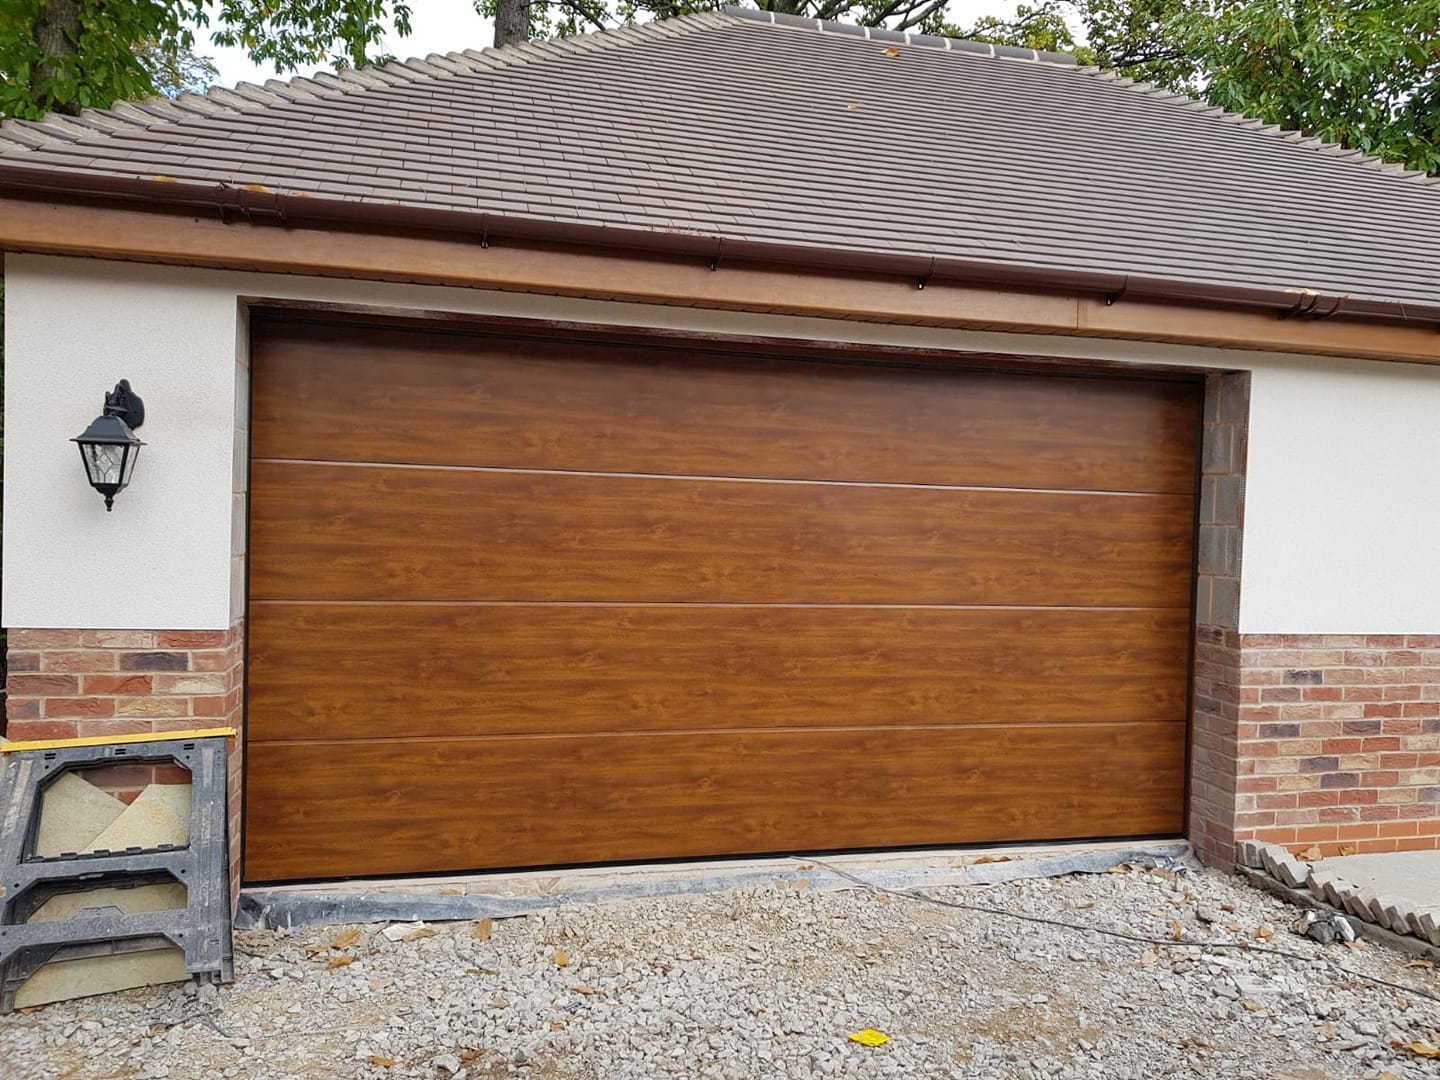 Hormann Wooden Sectional Garage Door Oct 18